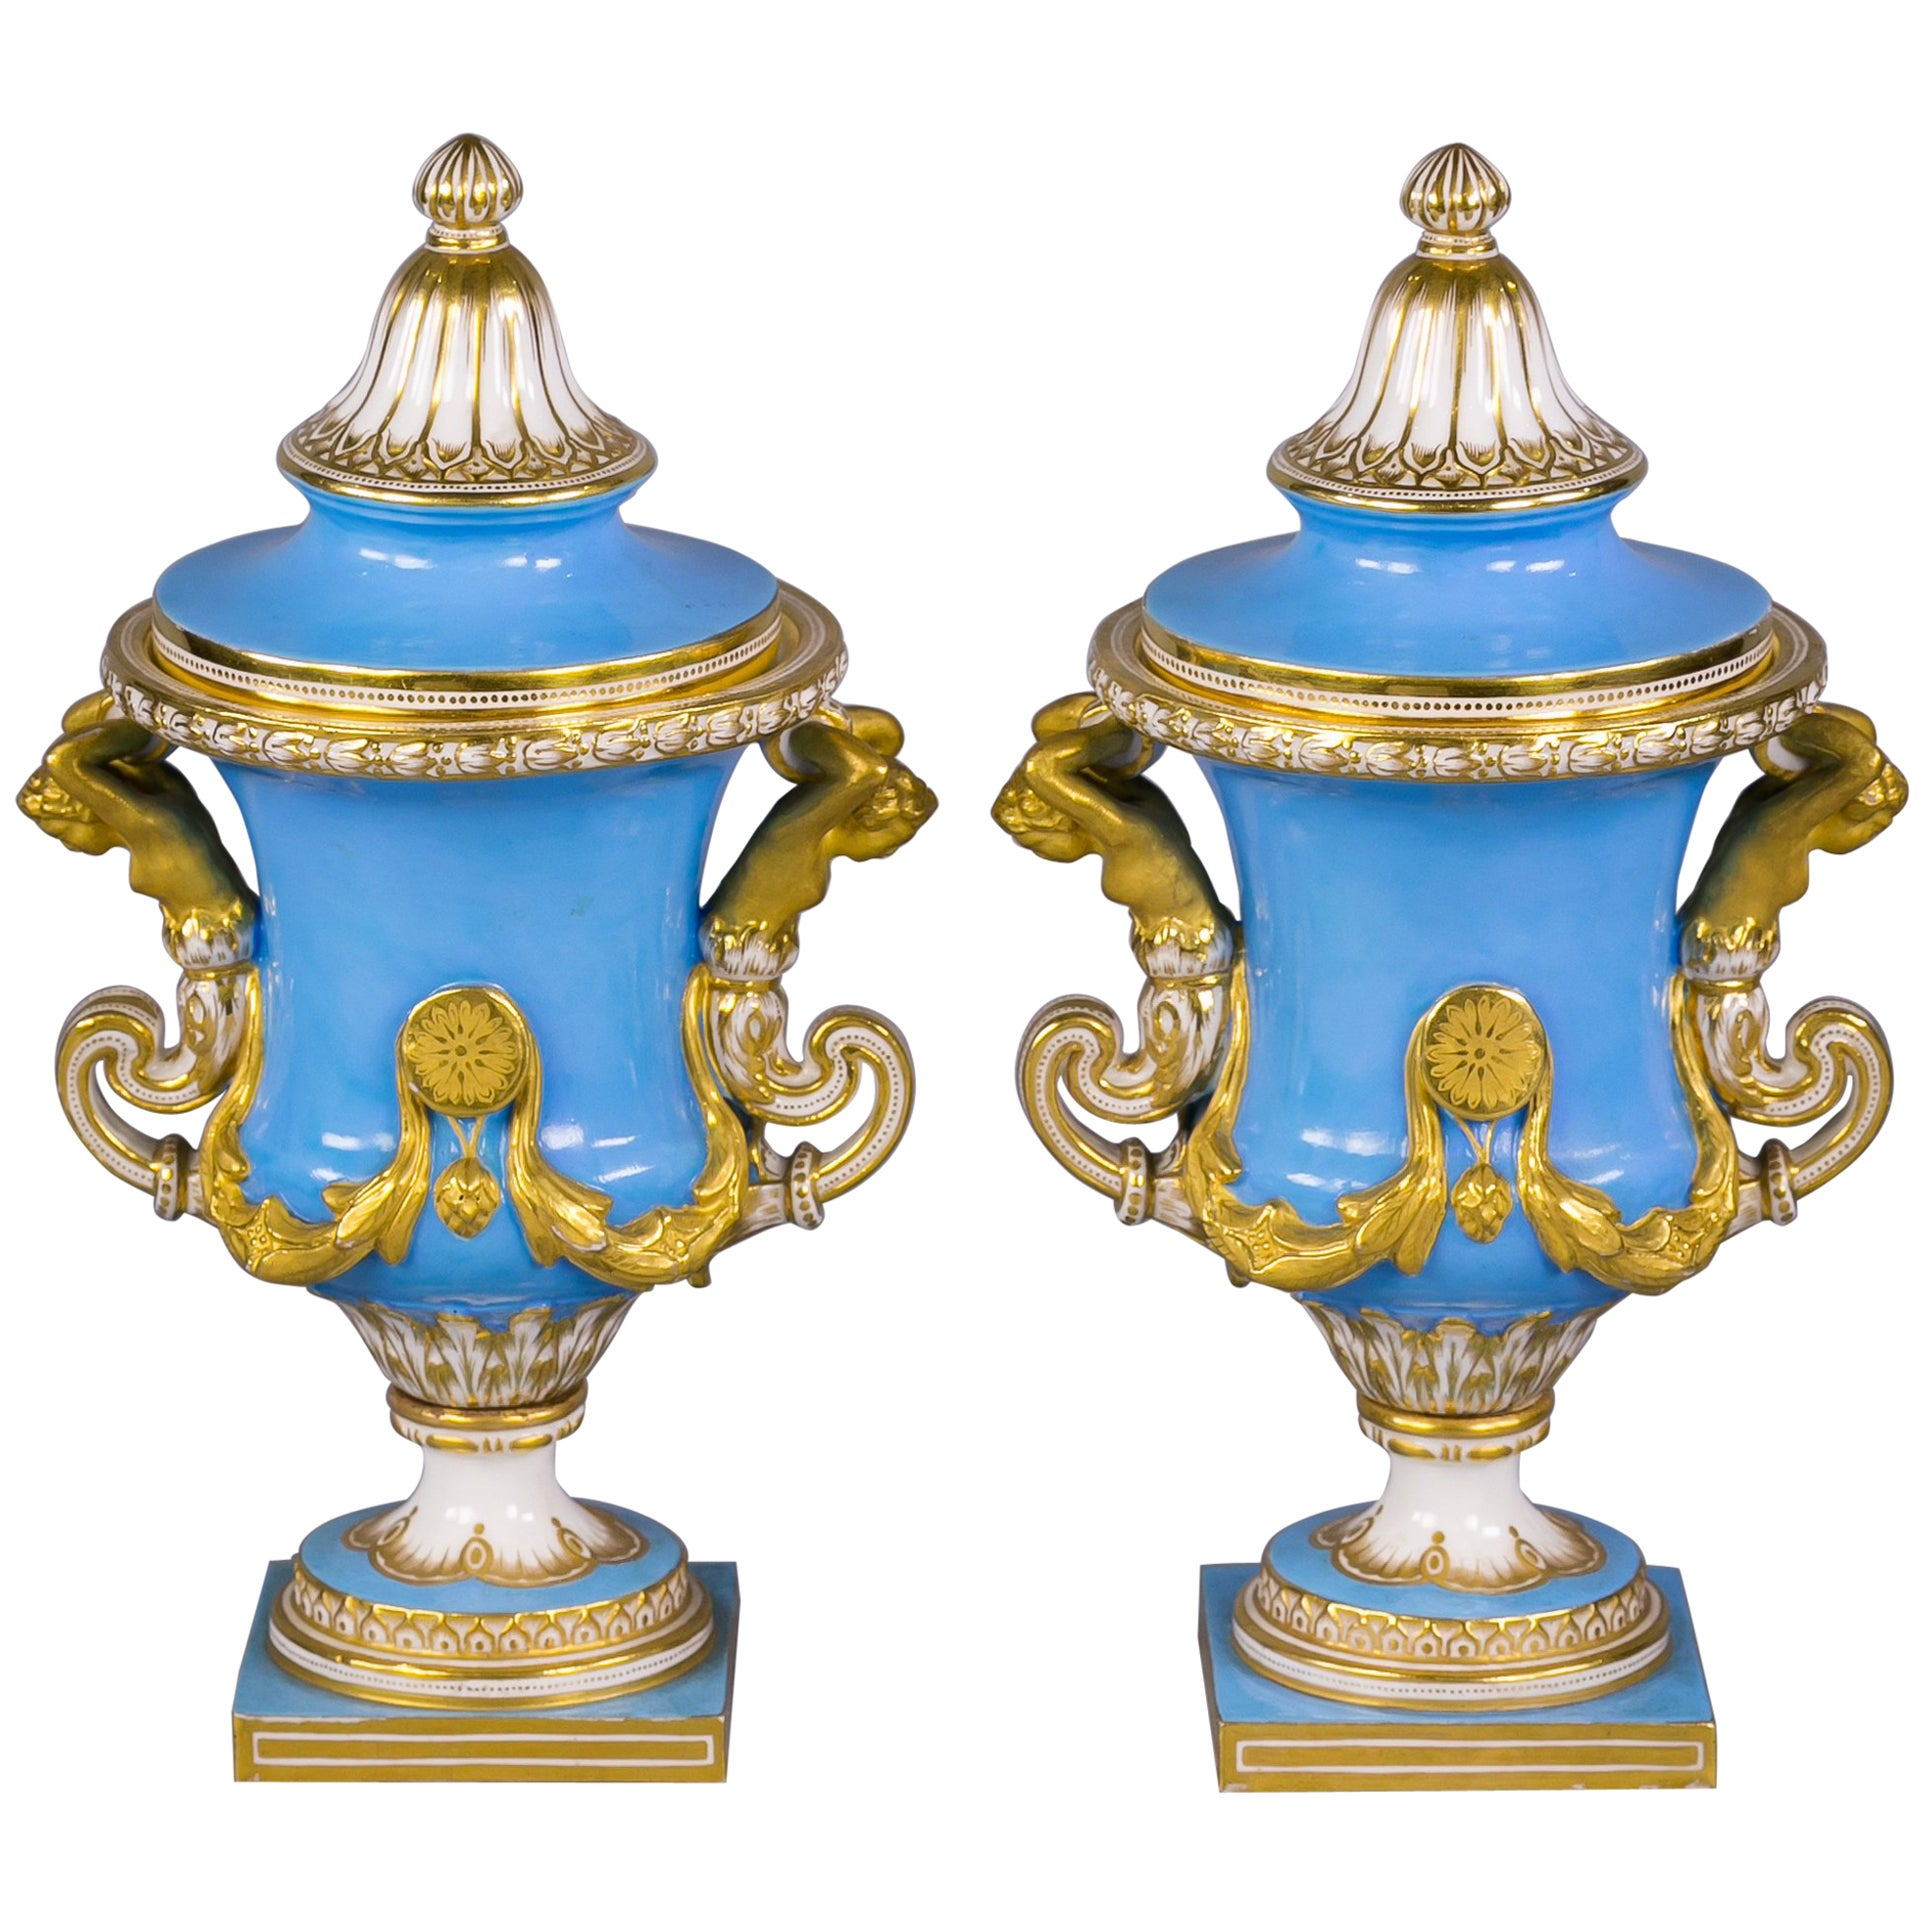 Pair of French Porcelain Gilt and Sky Blue Covered Urns, Sevres, circa 1860